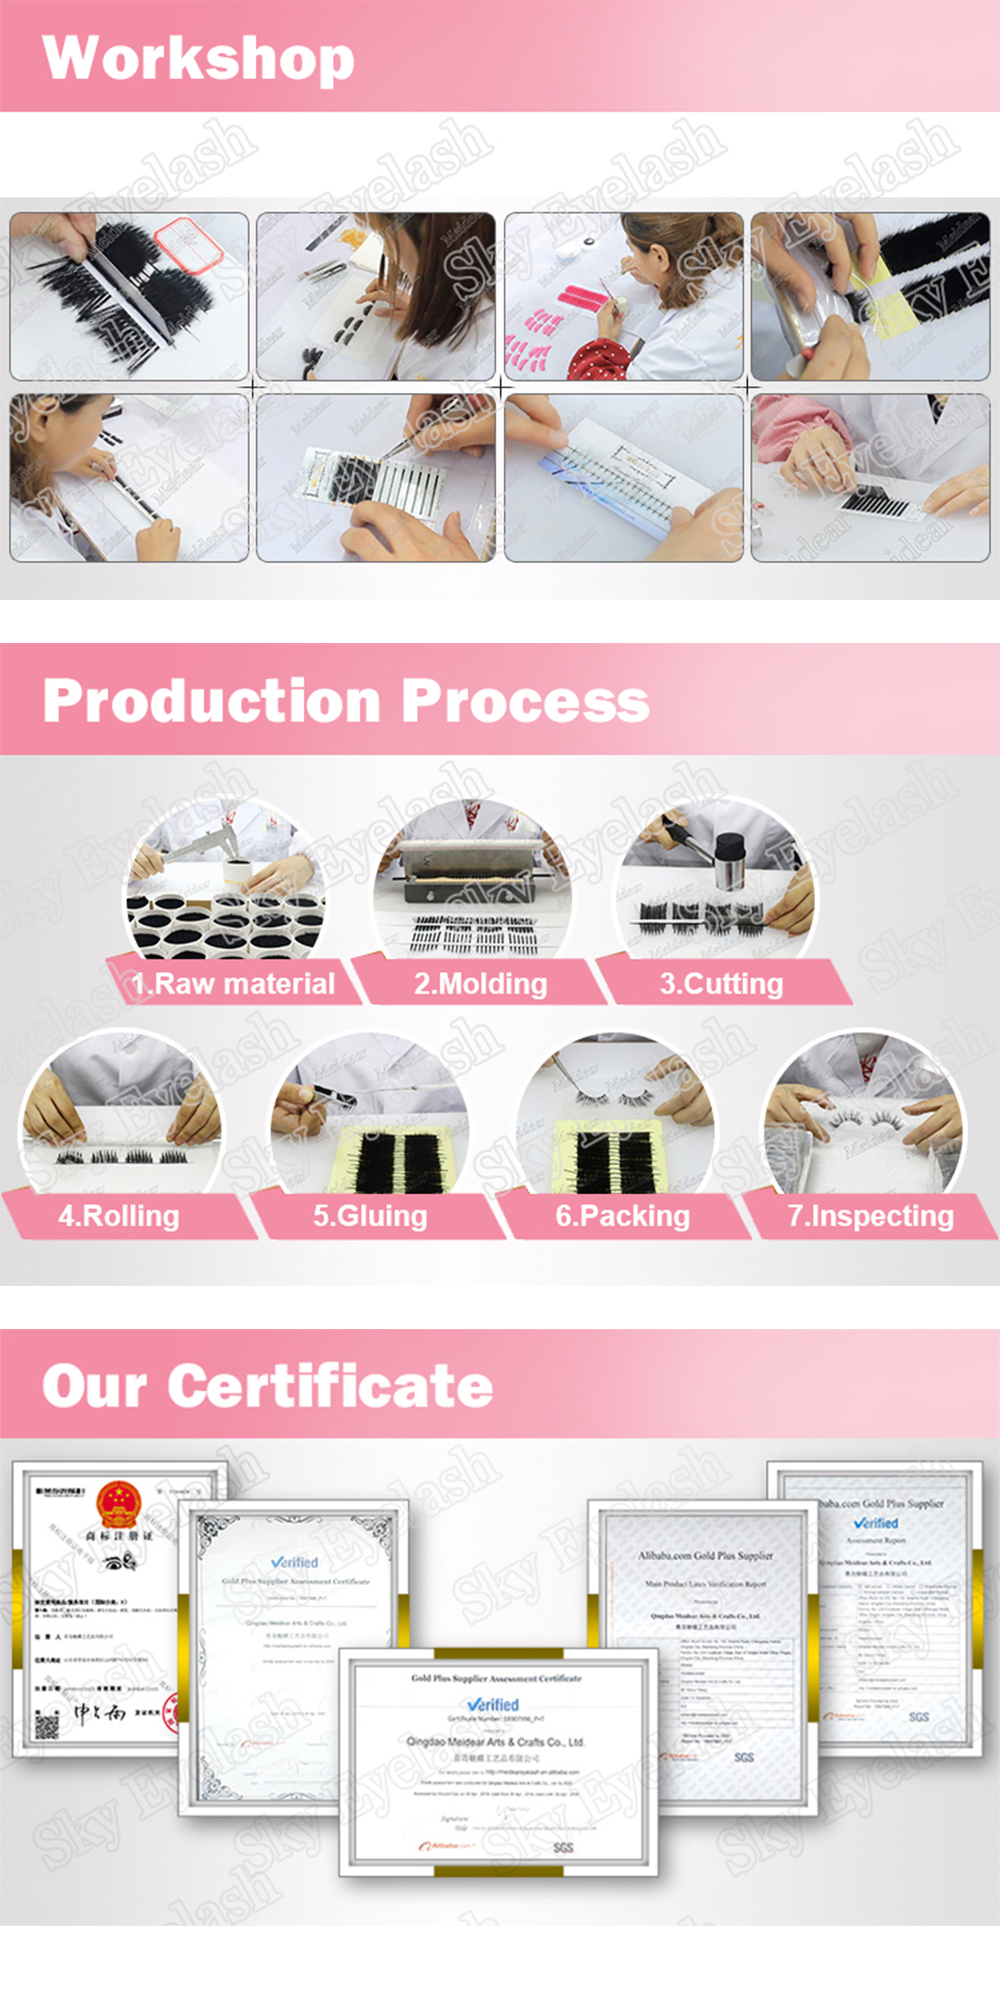 own-logo-lashes-supplier-provide-the-competitive-lashes.jpg